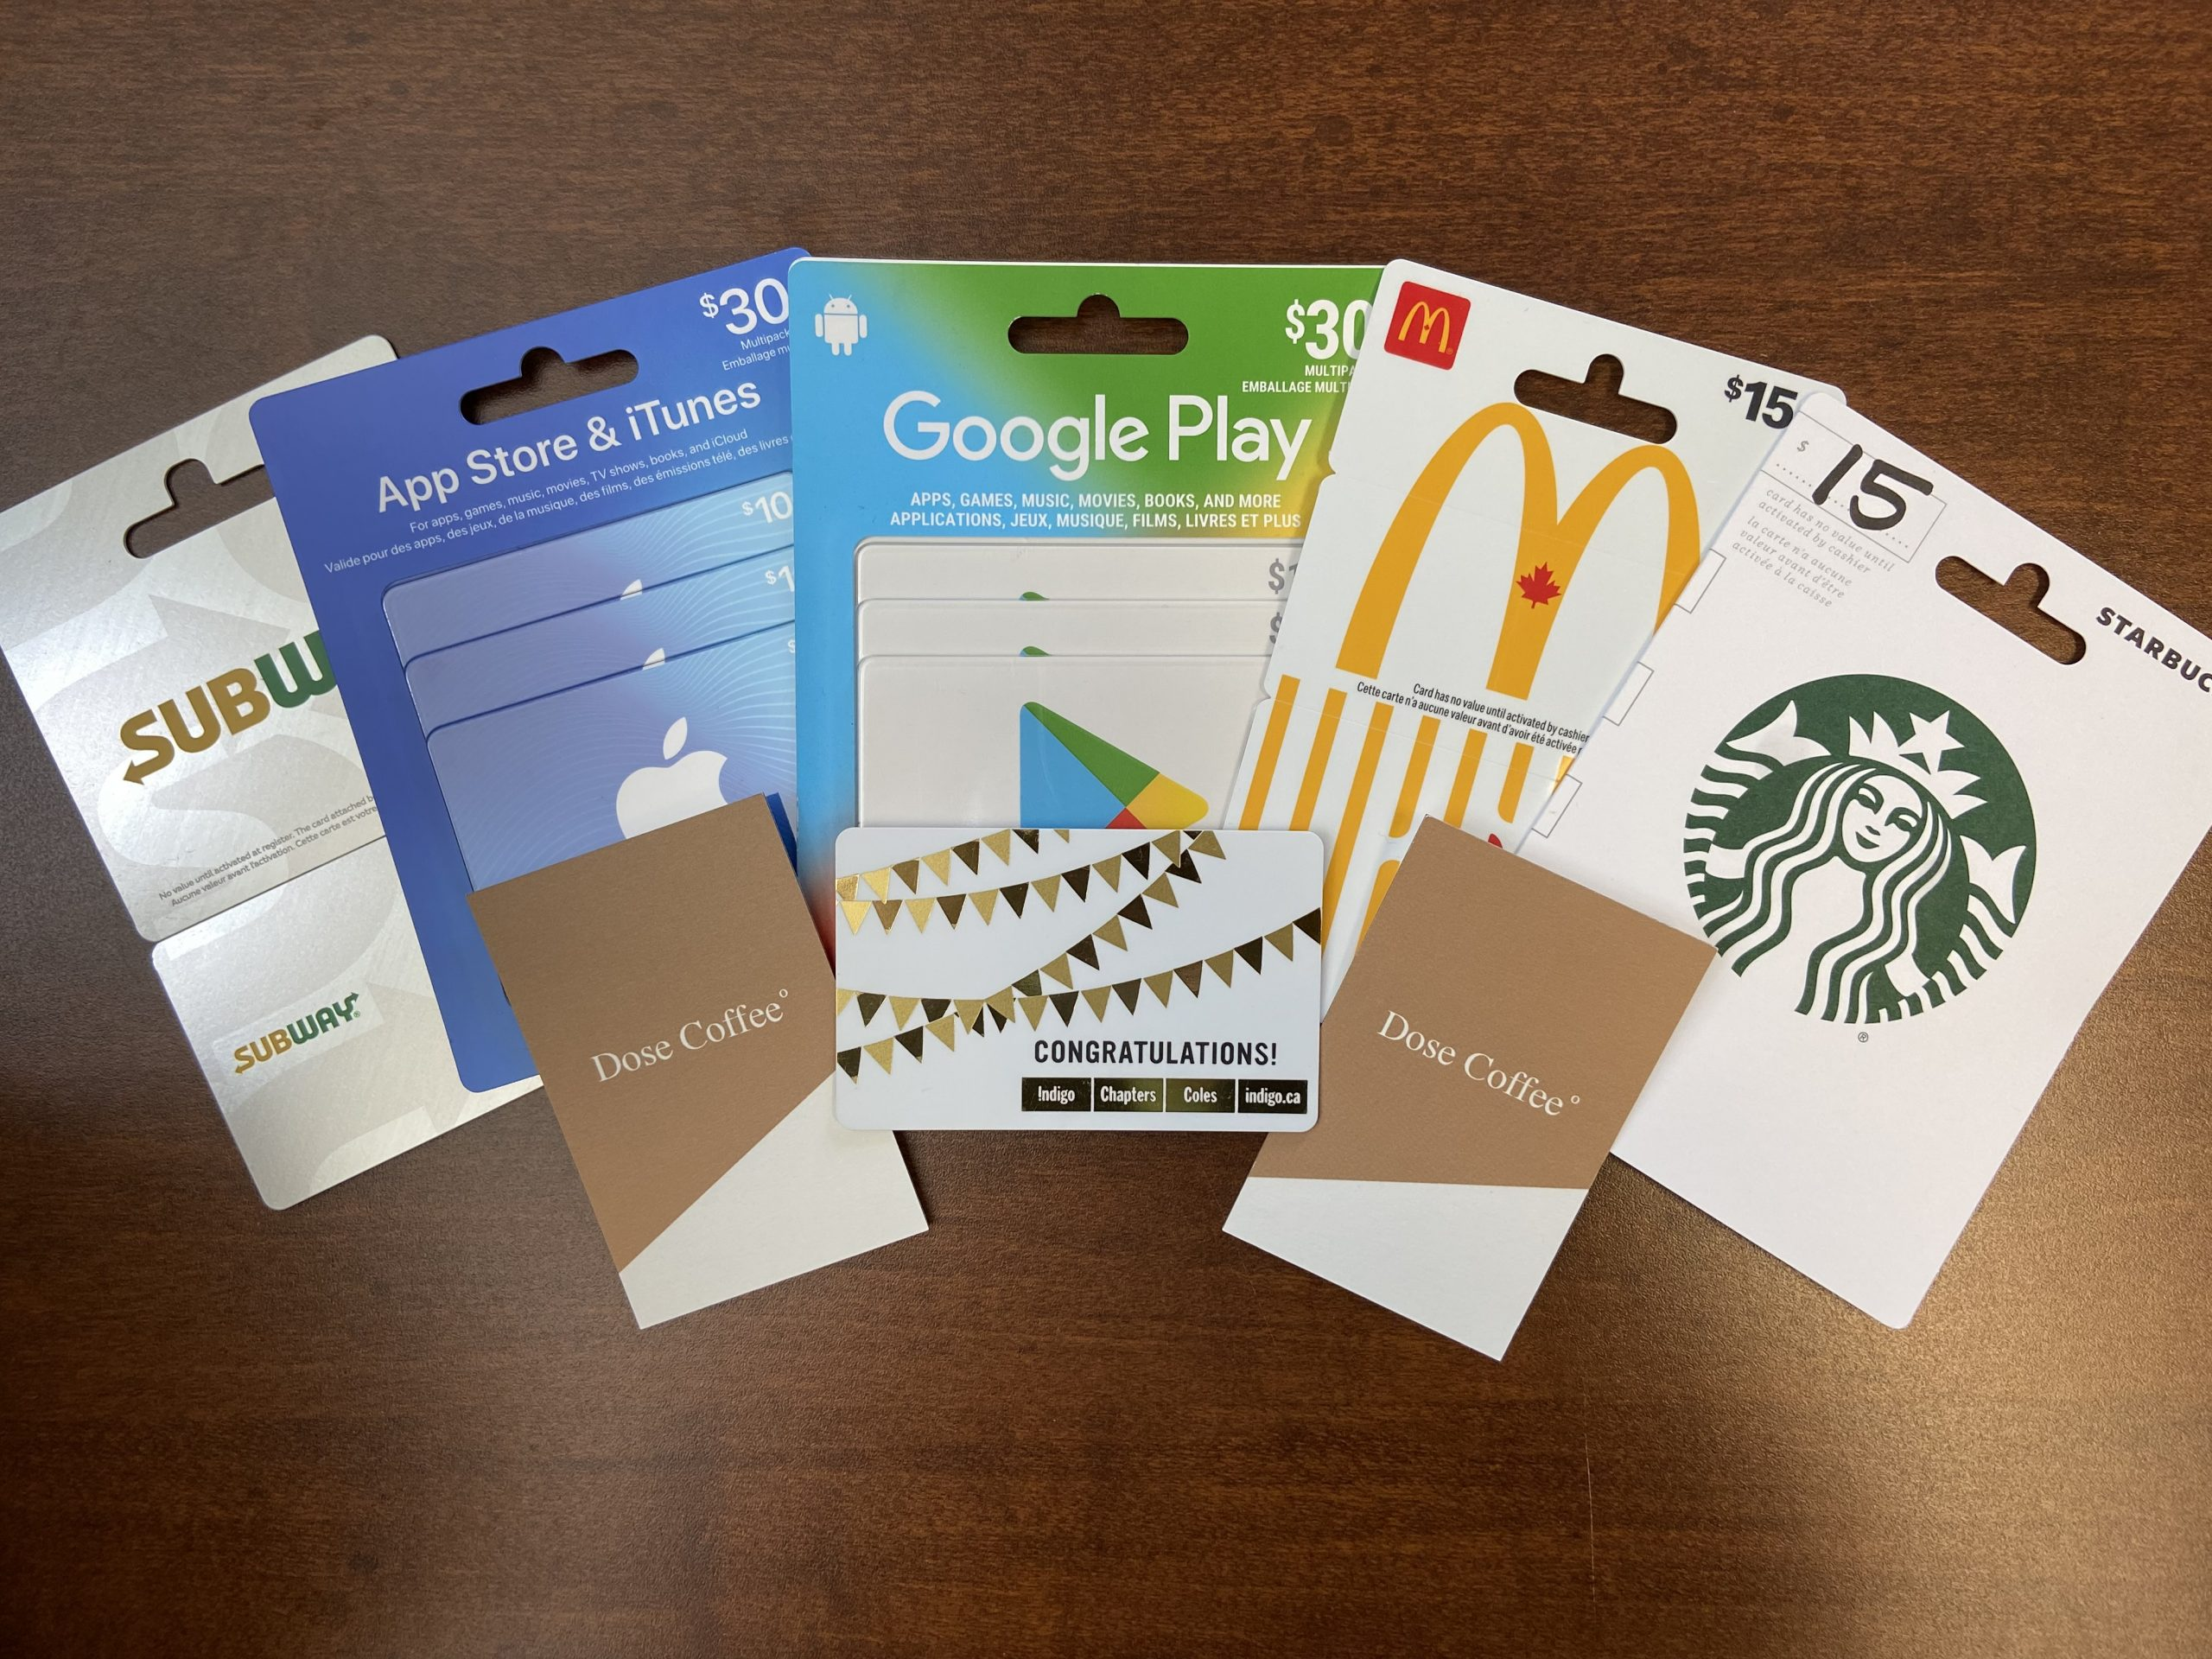 Gift cards for subway, itunes, google play, mcdonalds, starbucks, dose coffee, chapters